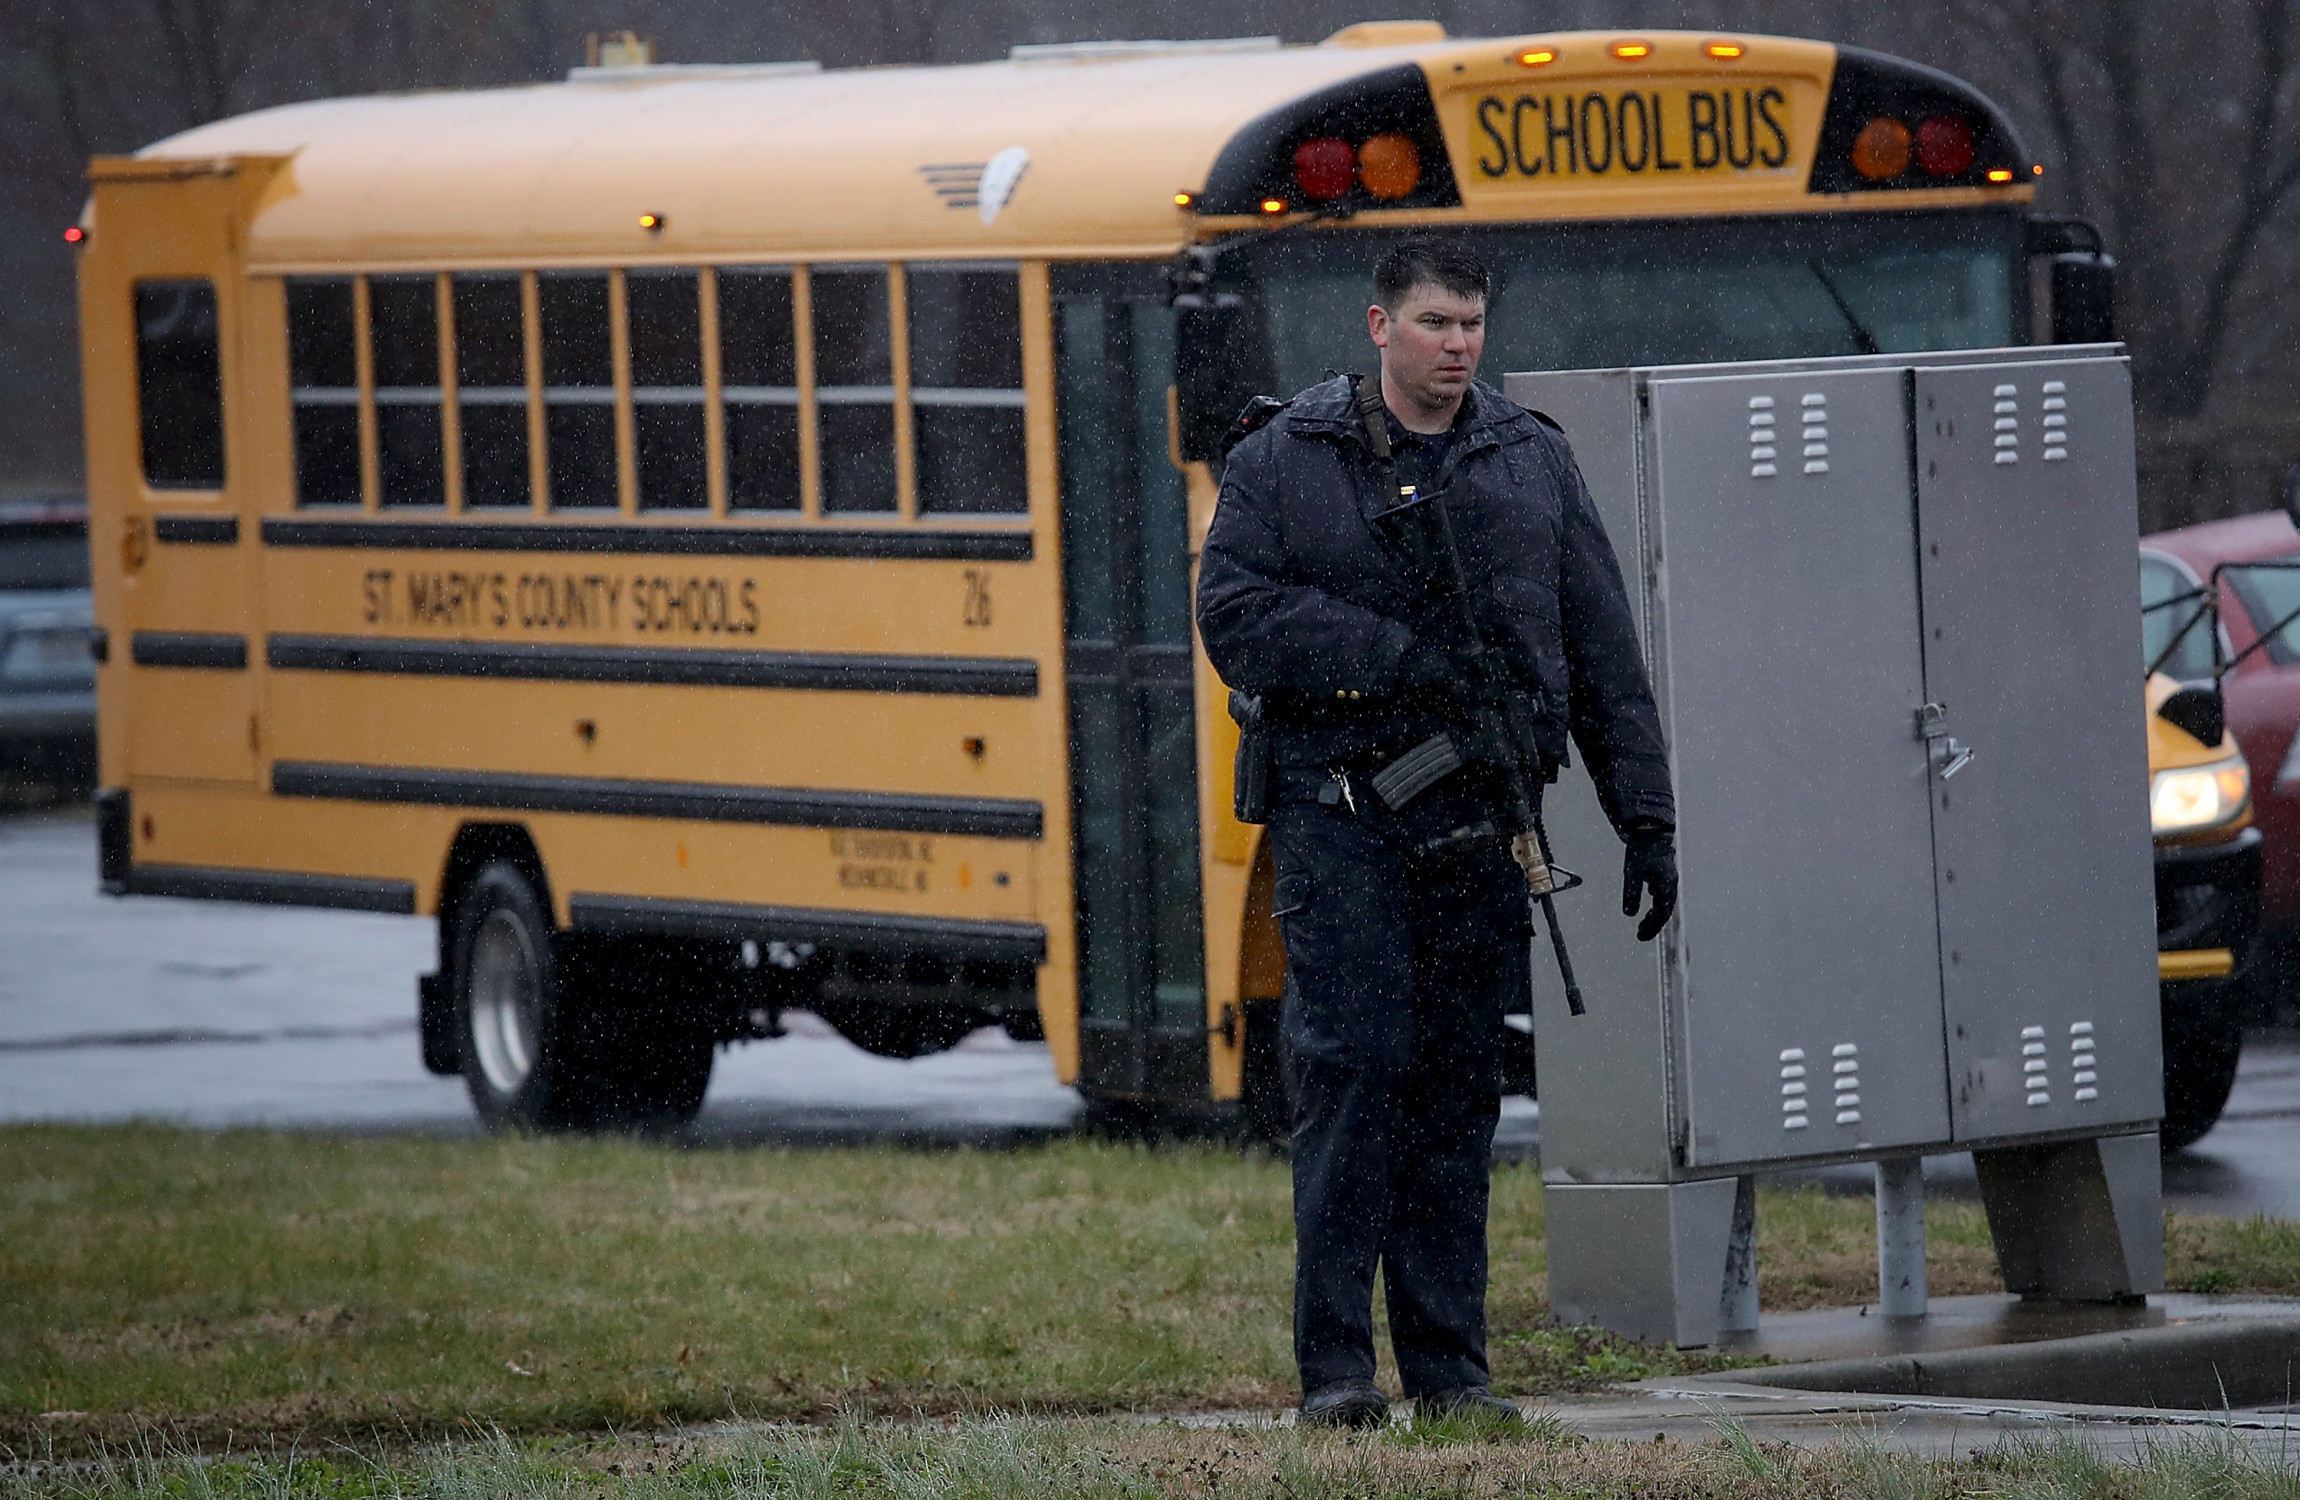 Three shot including gunman in Maryland school shooting, report says